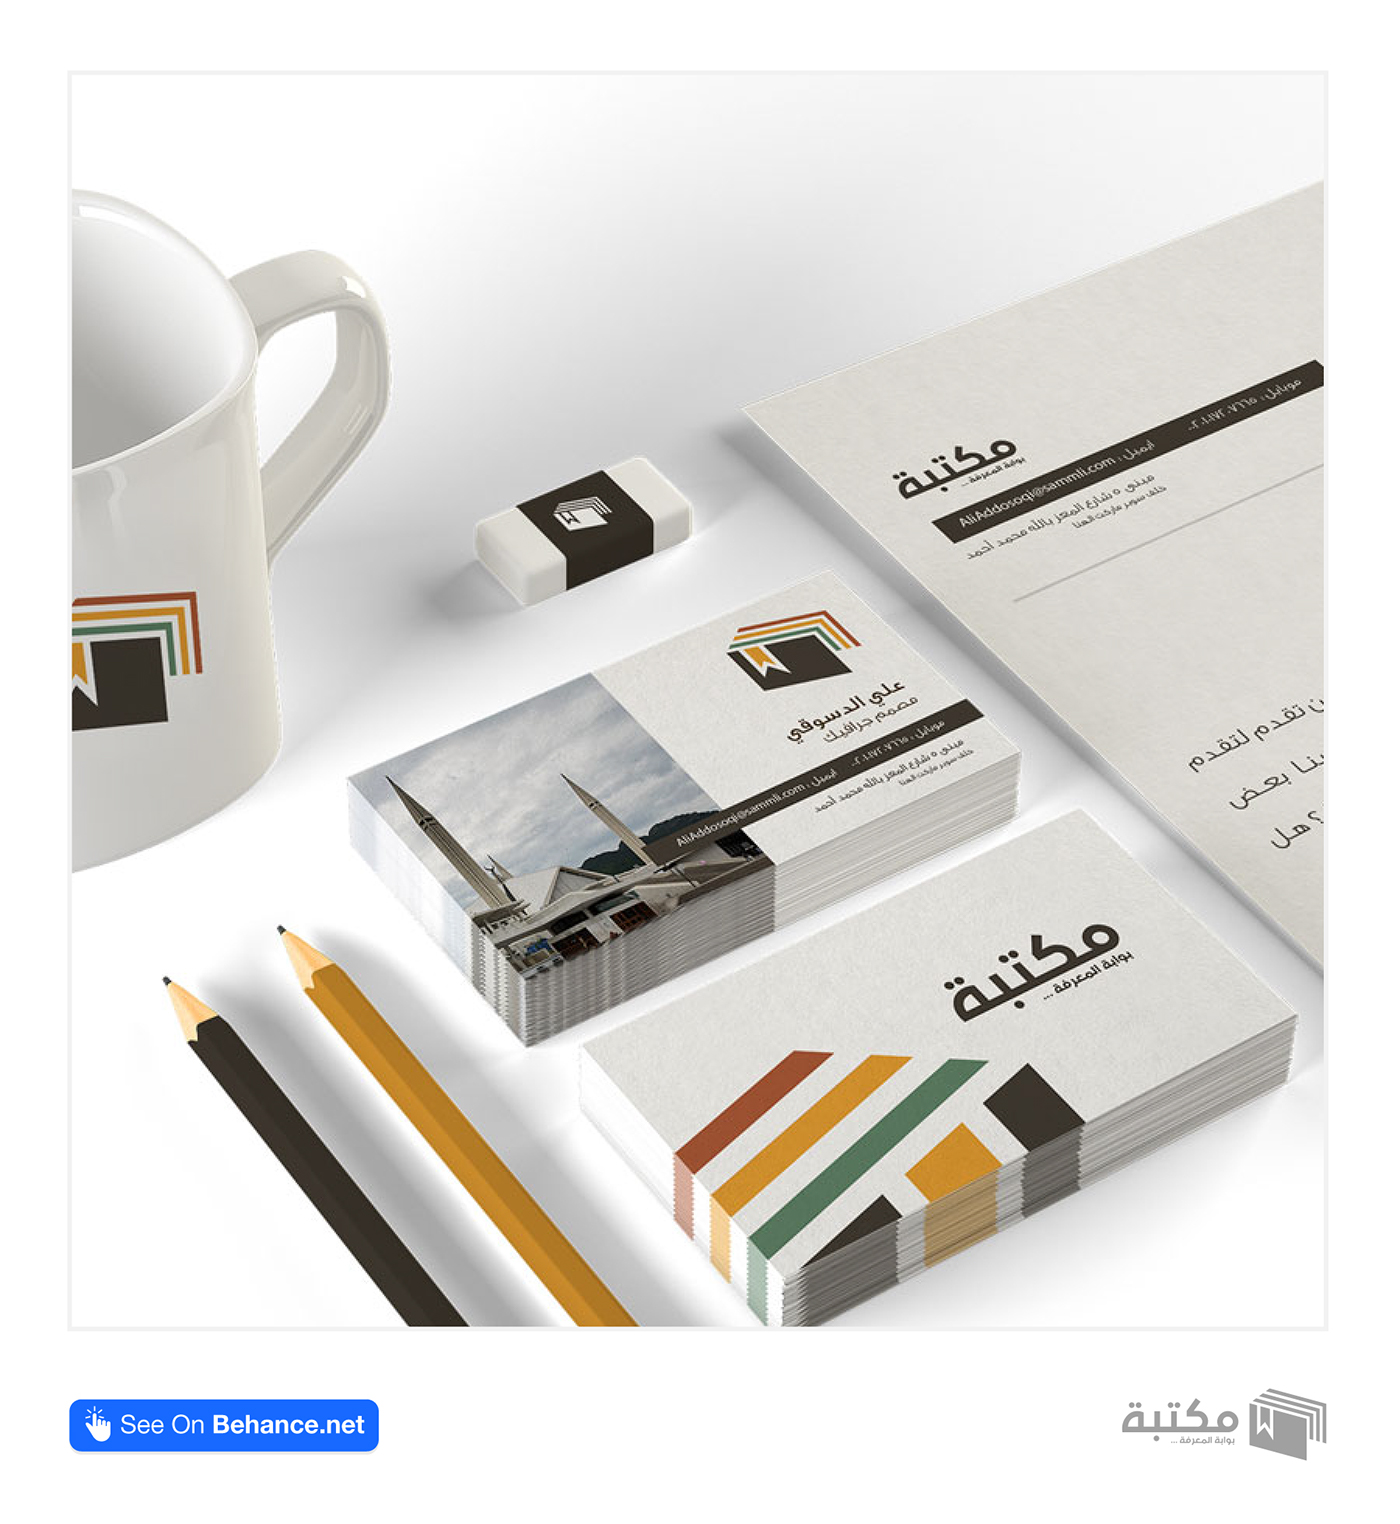 Resume | CV | Portfolio on Behance